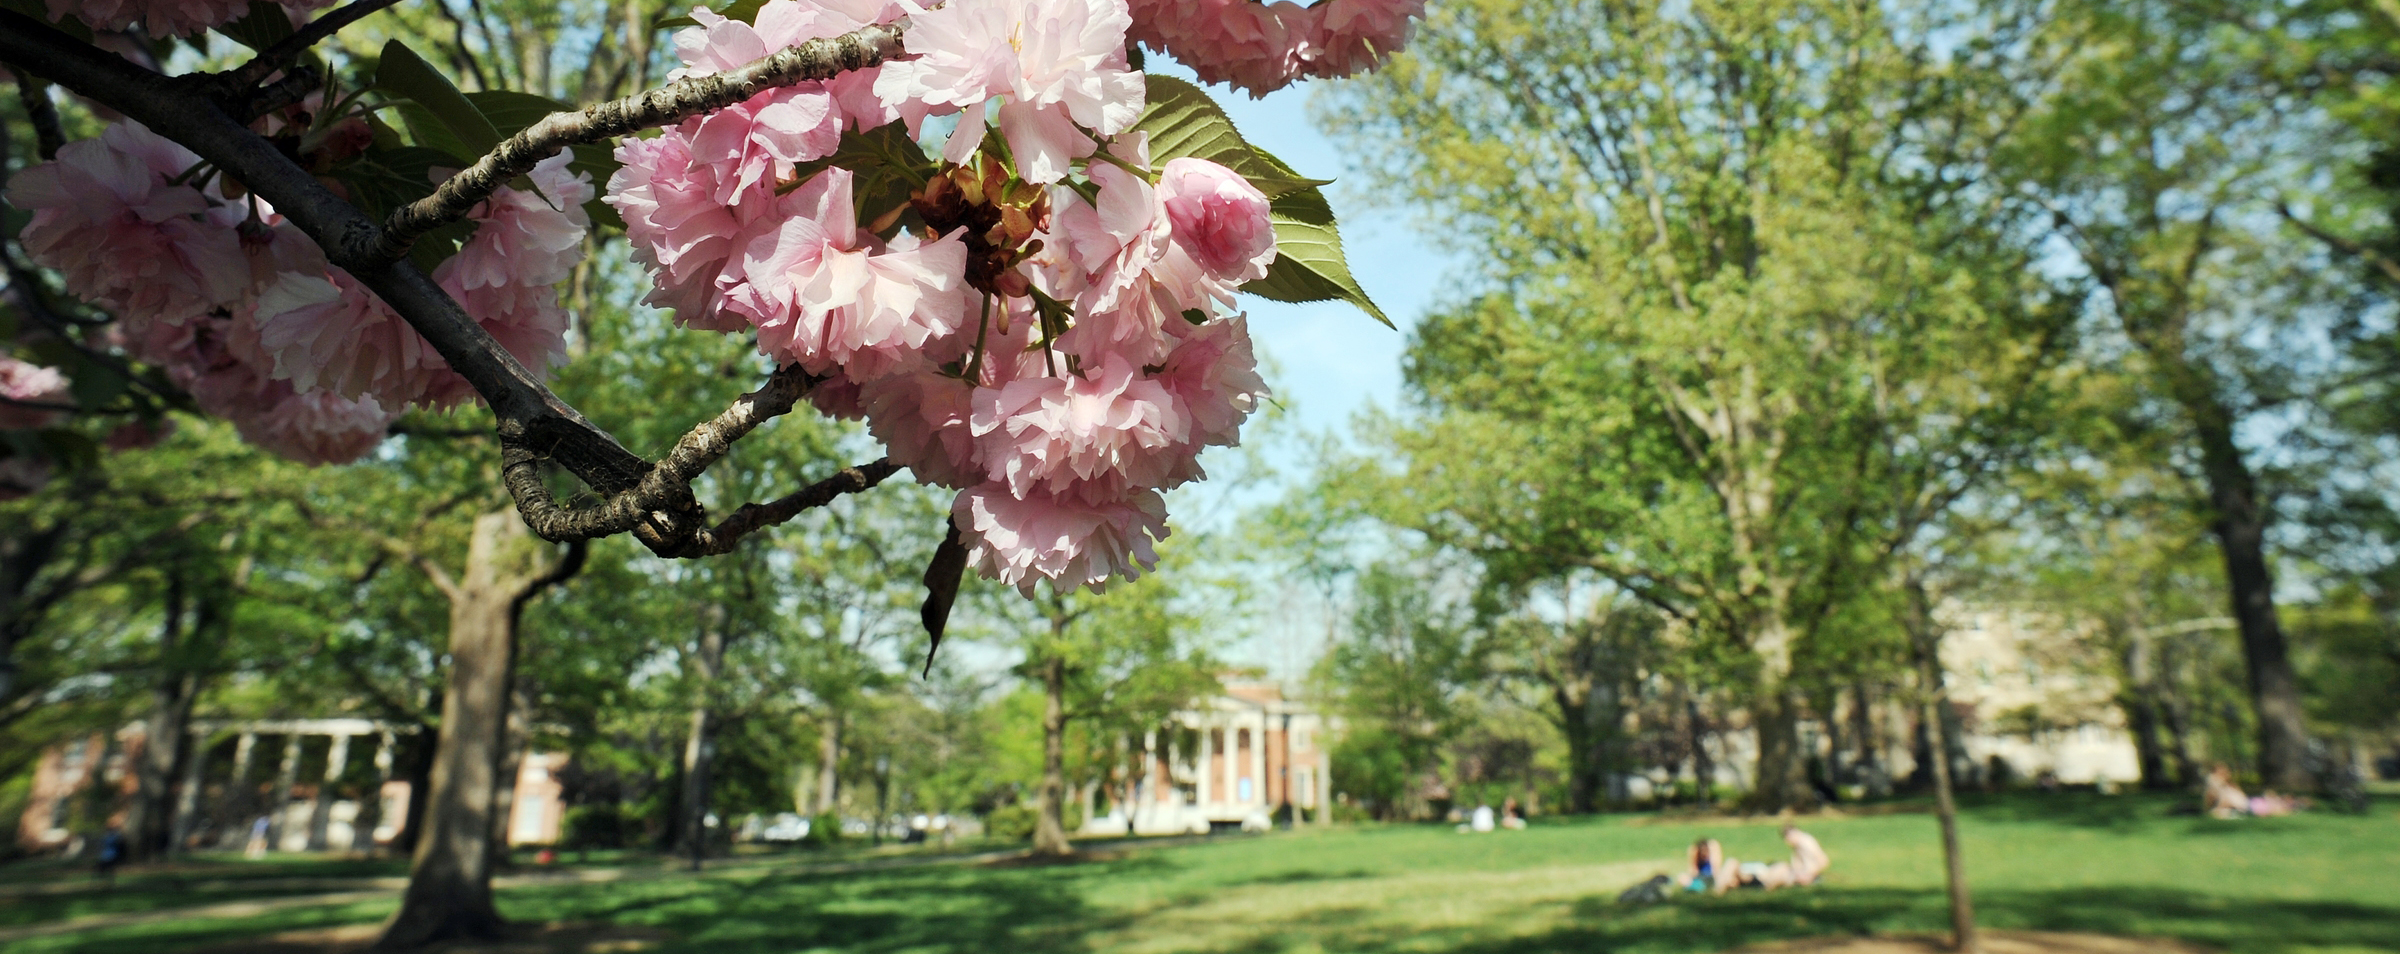 Spring flowers at the University of North Carolina at Chapel Hill.